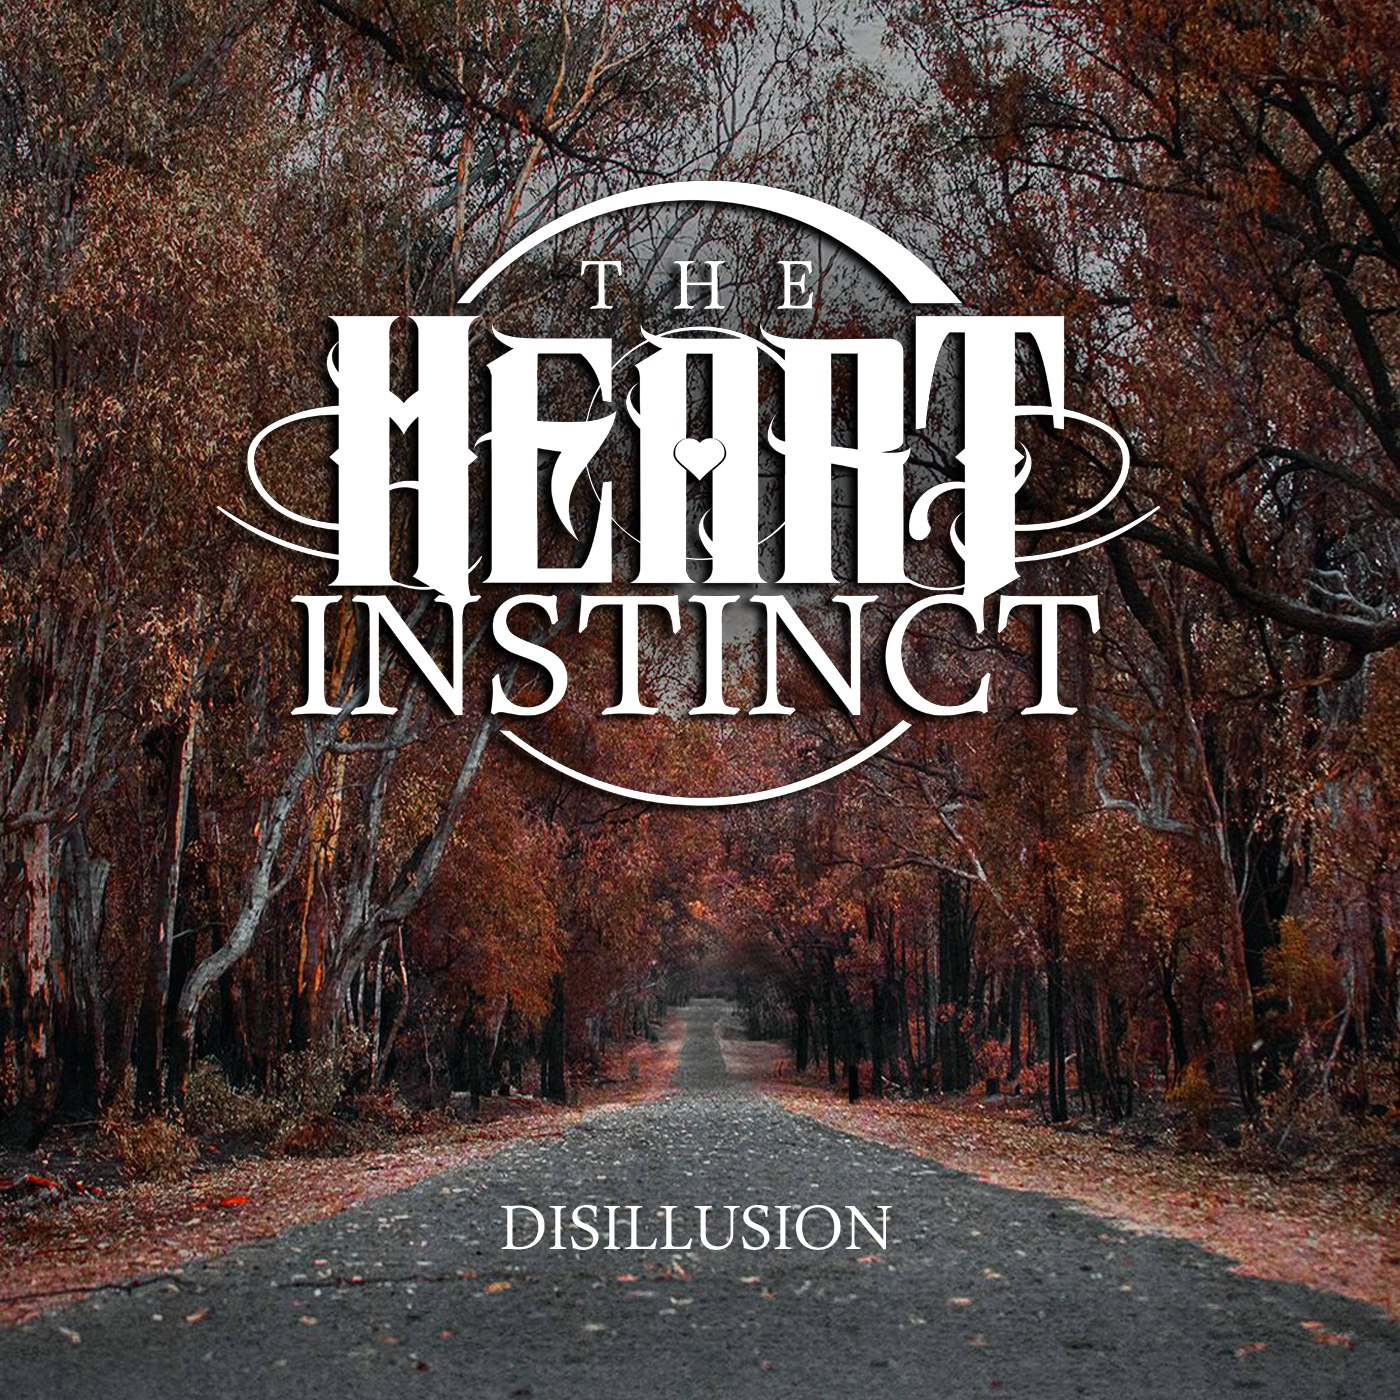 The Heart Instinct - Disillusion [EP] (2017)